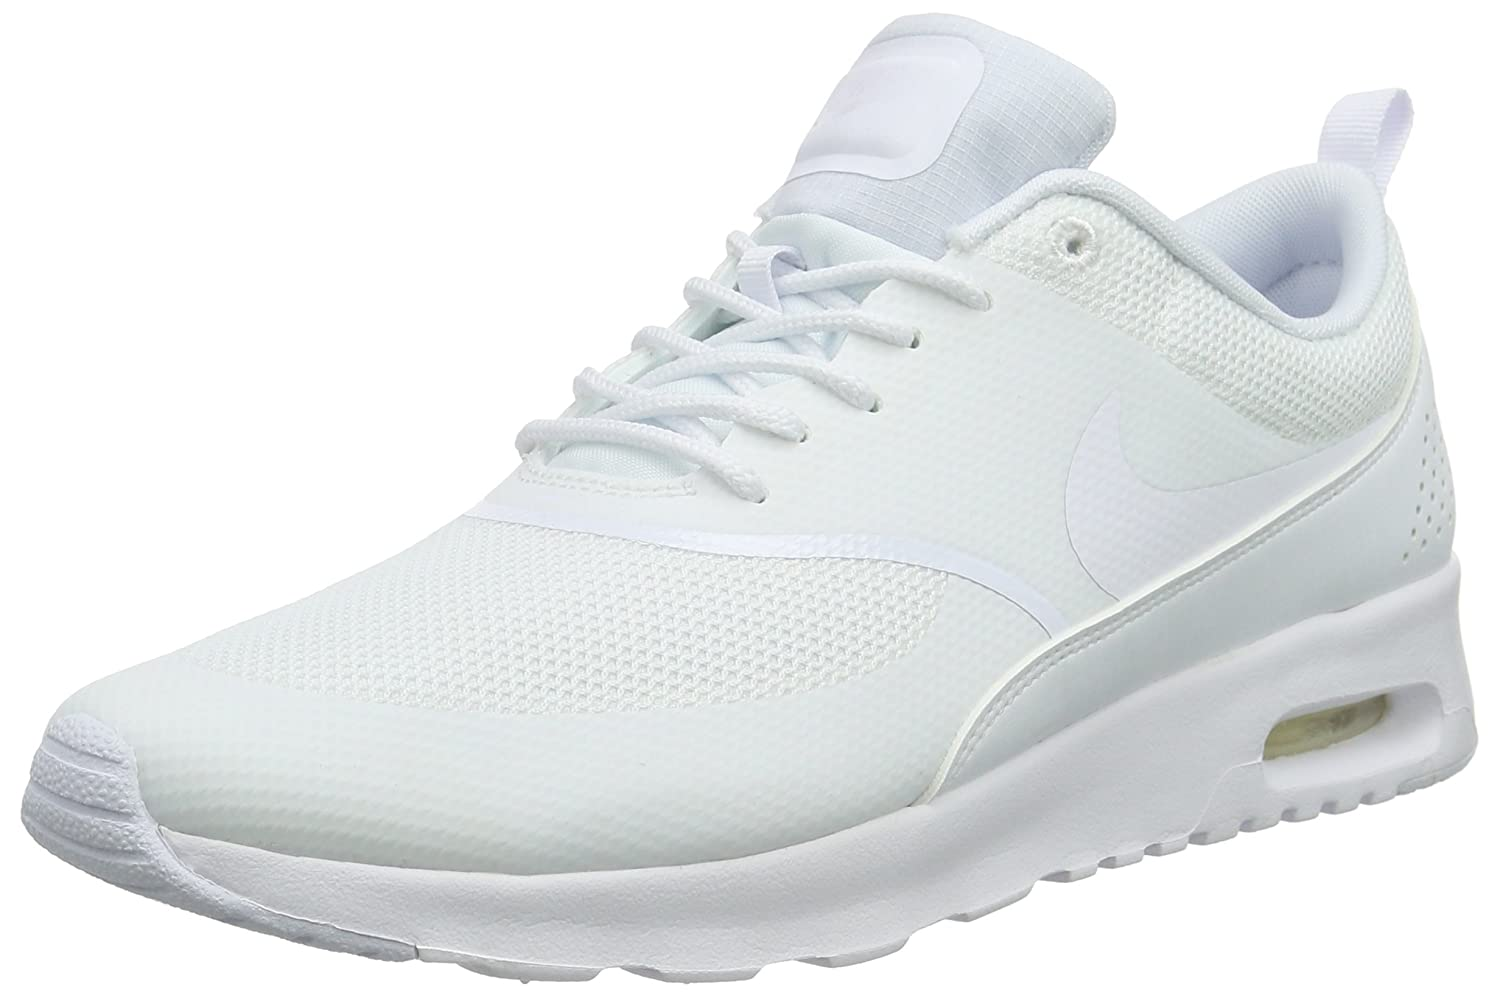 half off 89aca 773b1 Nike Air Max Thea, Women Low-Top Sneakers, White (White White), 8.5 UK (43  EU)  Amazon.co.uk  Shoes   Bags